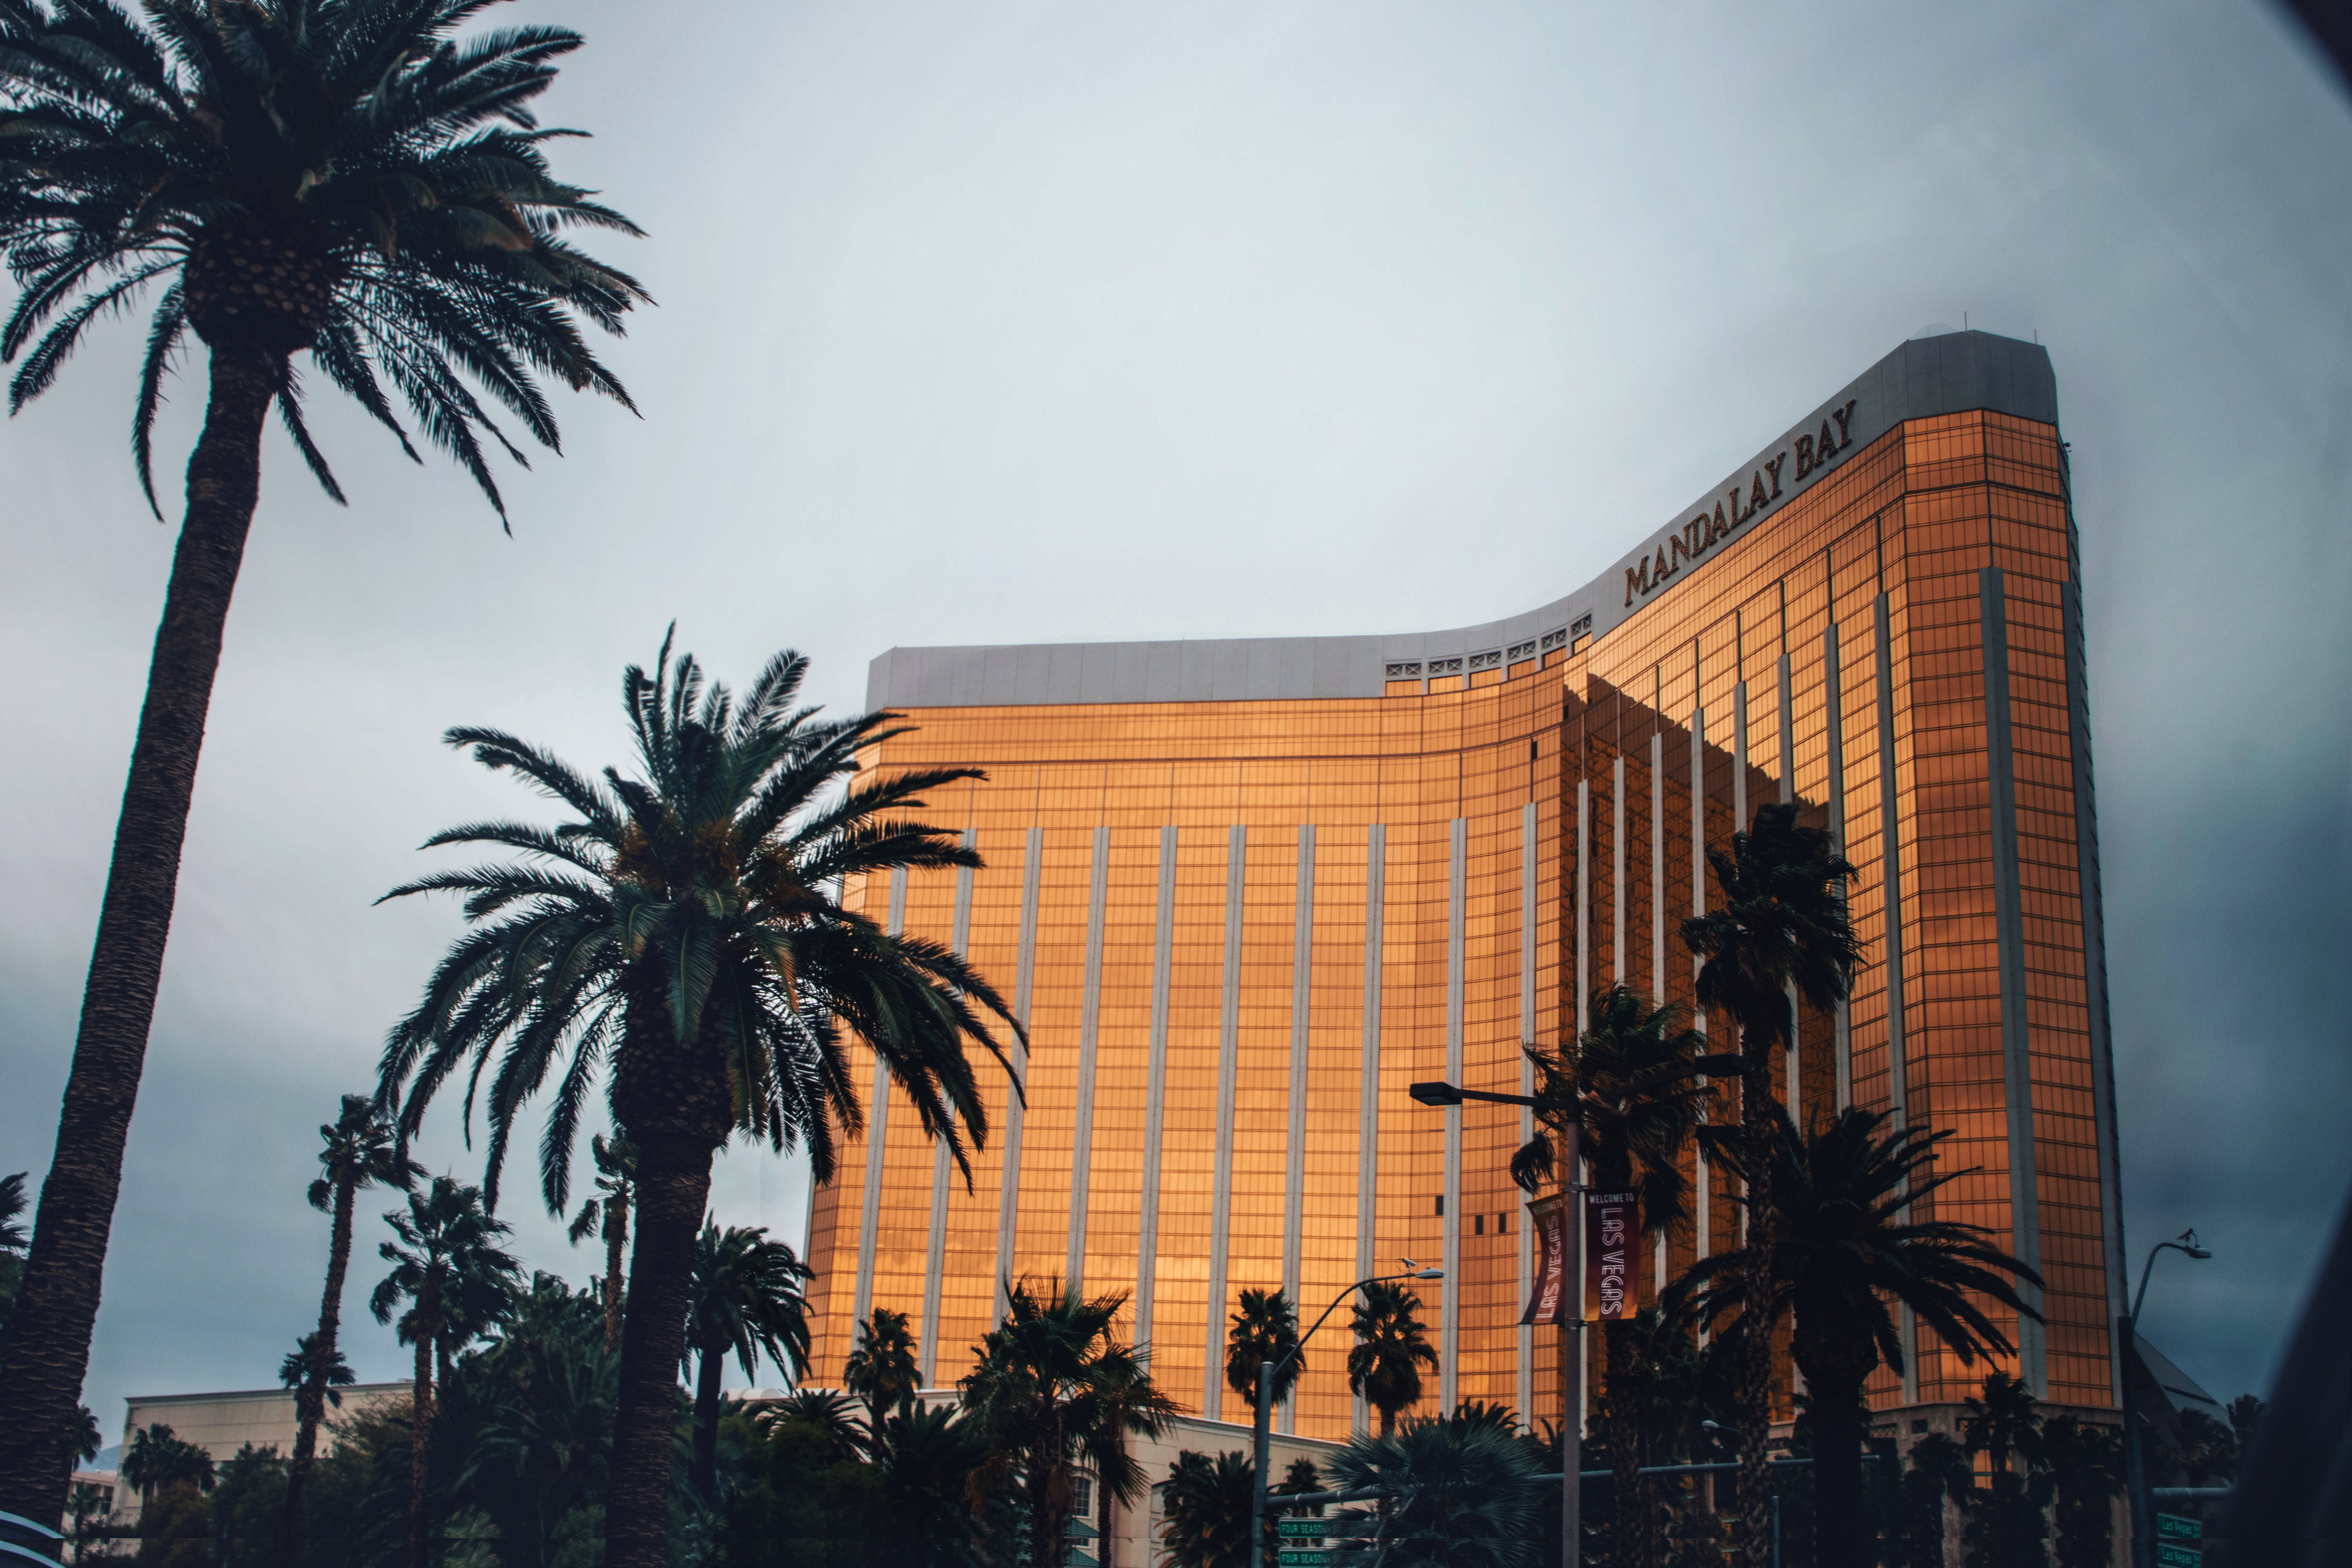 Mandalay Bay Building